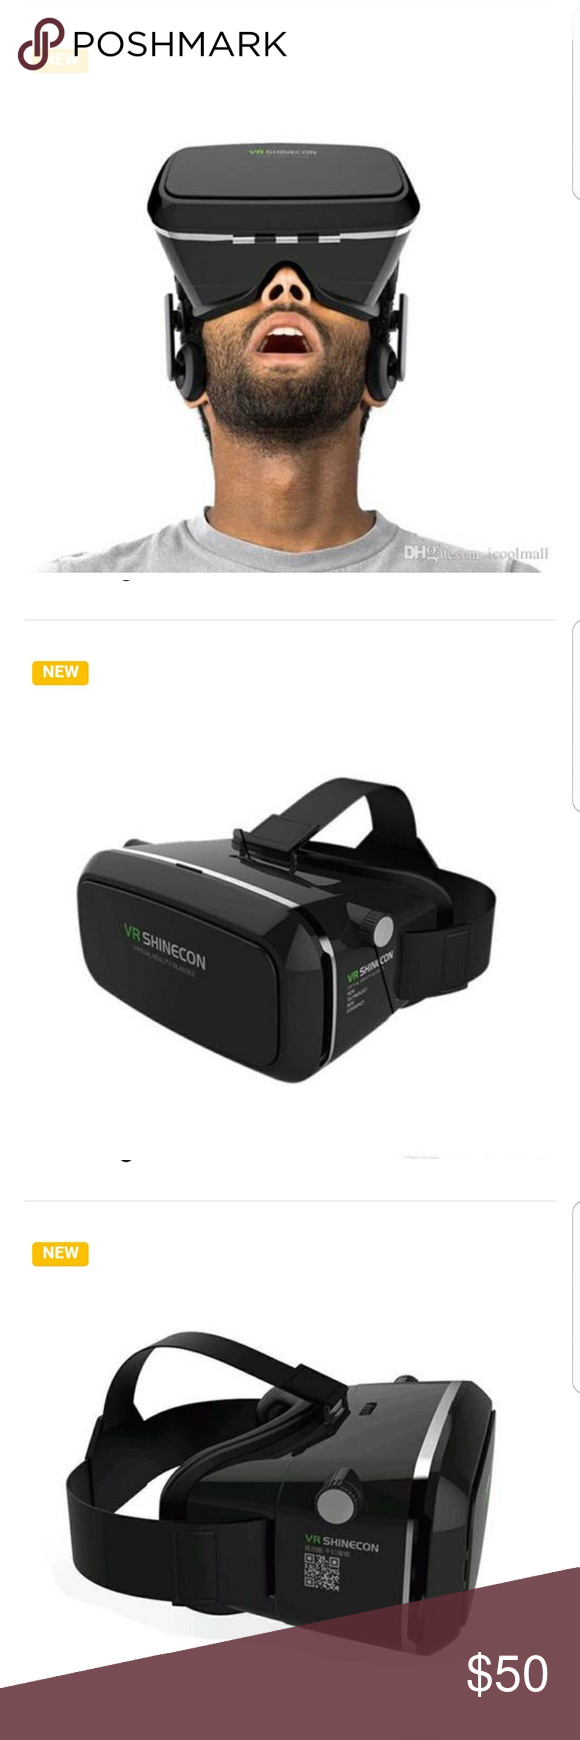 3D Glasses Virtual Reality Game for any smartphone